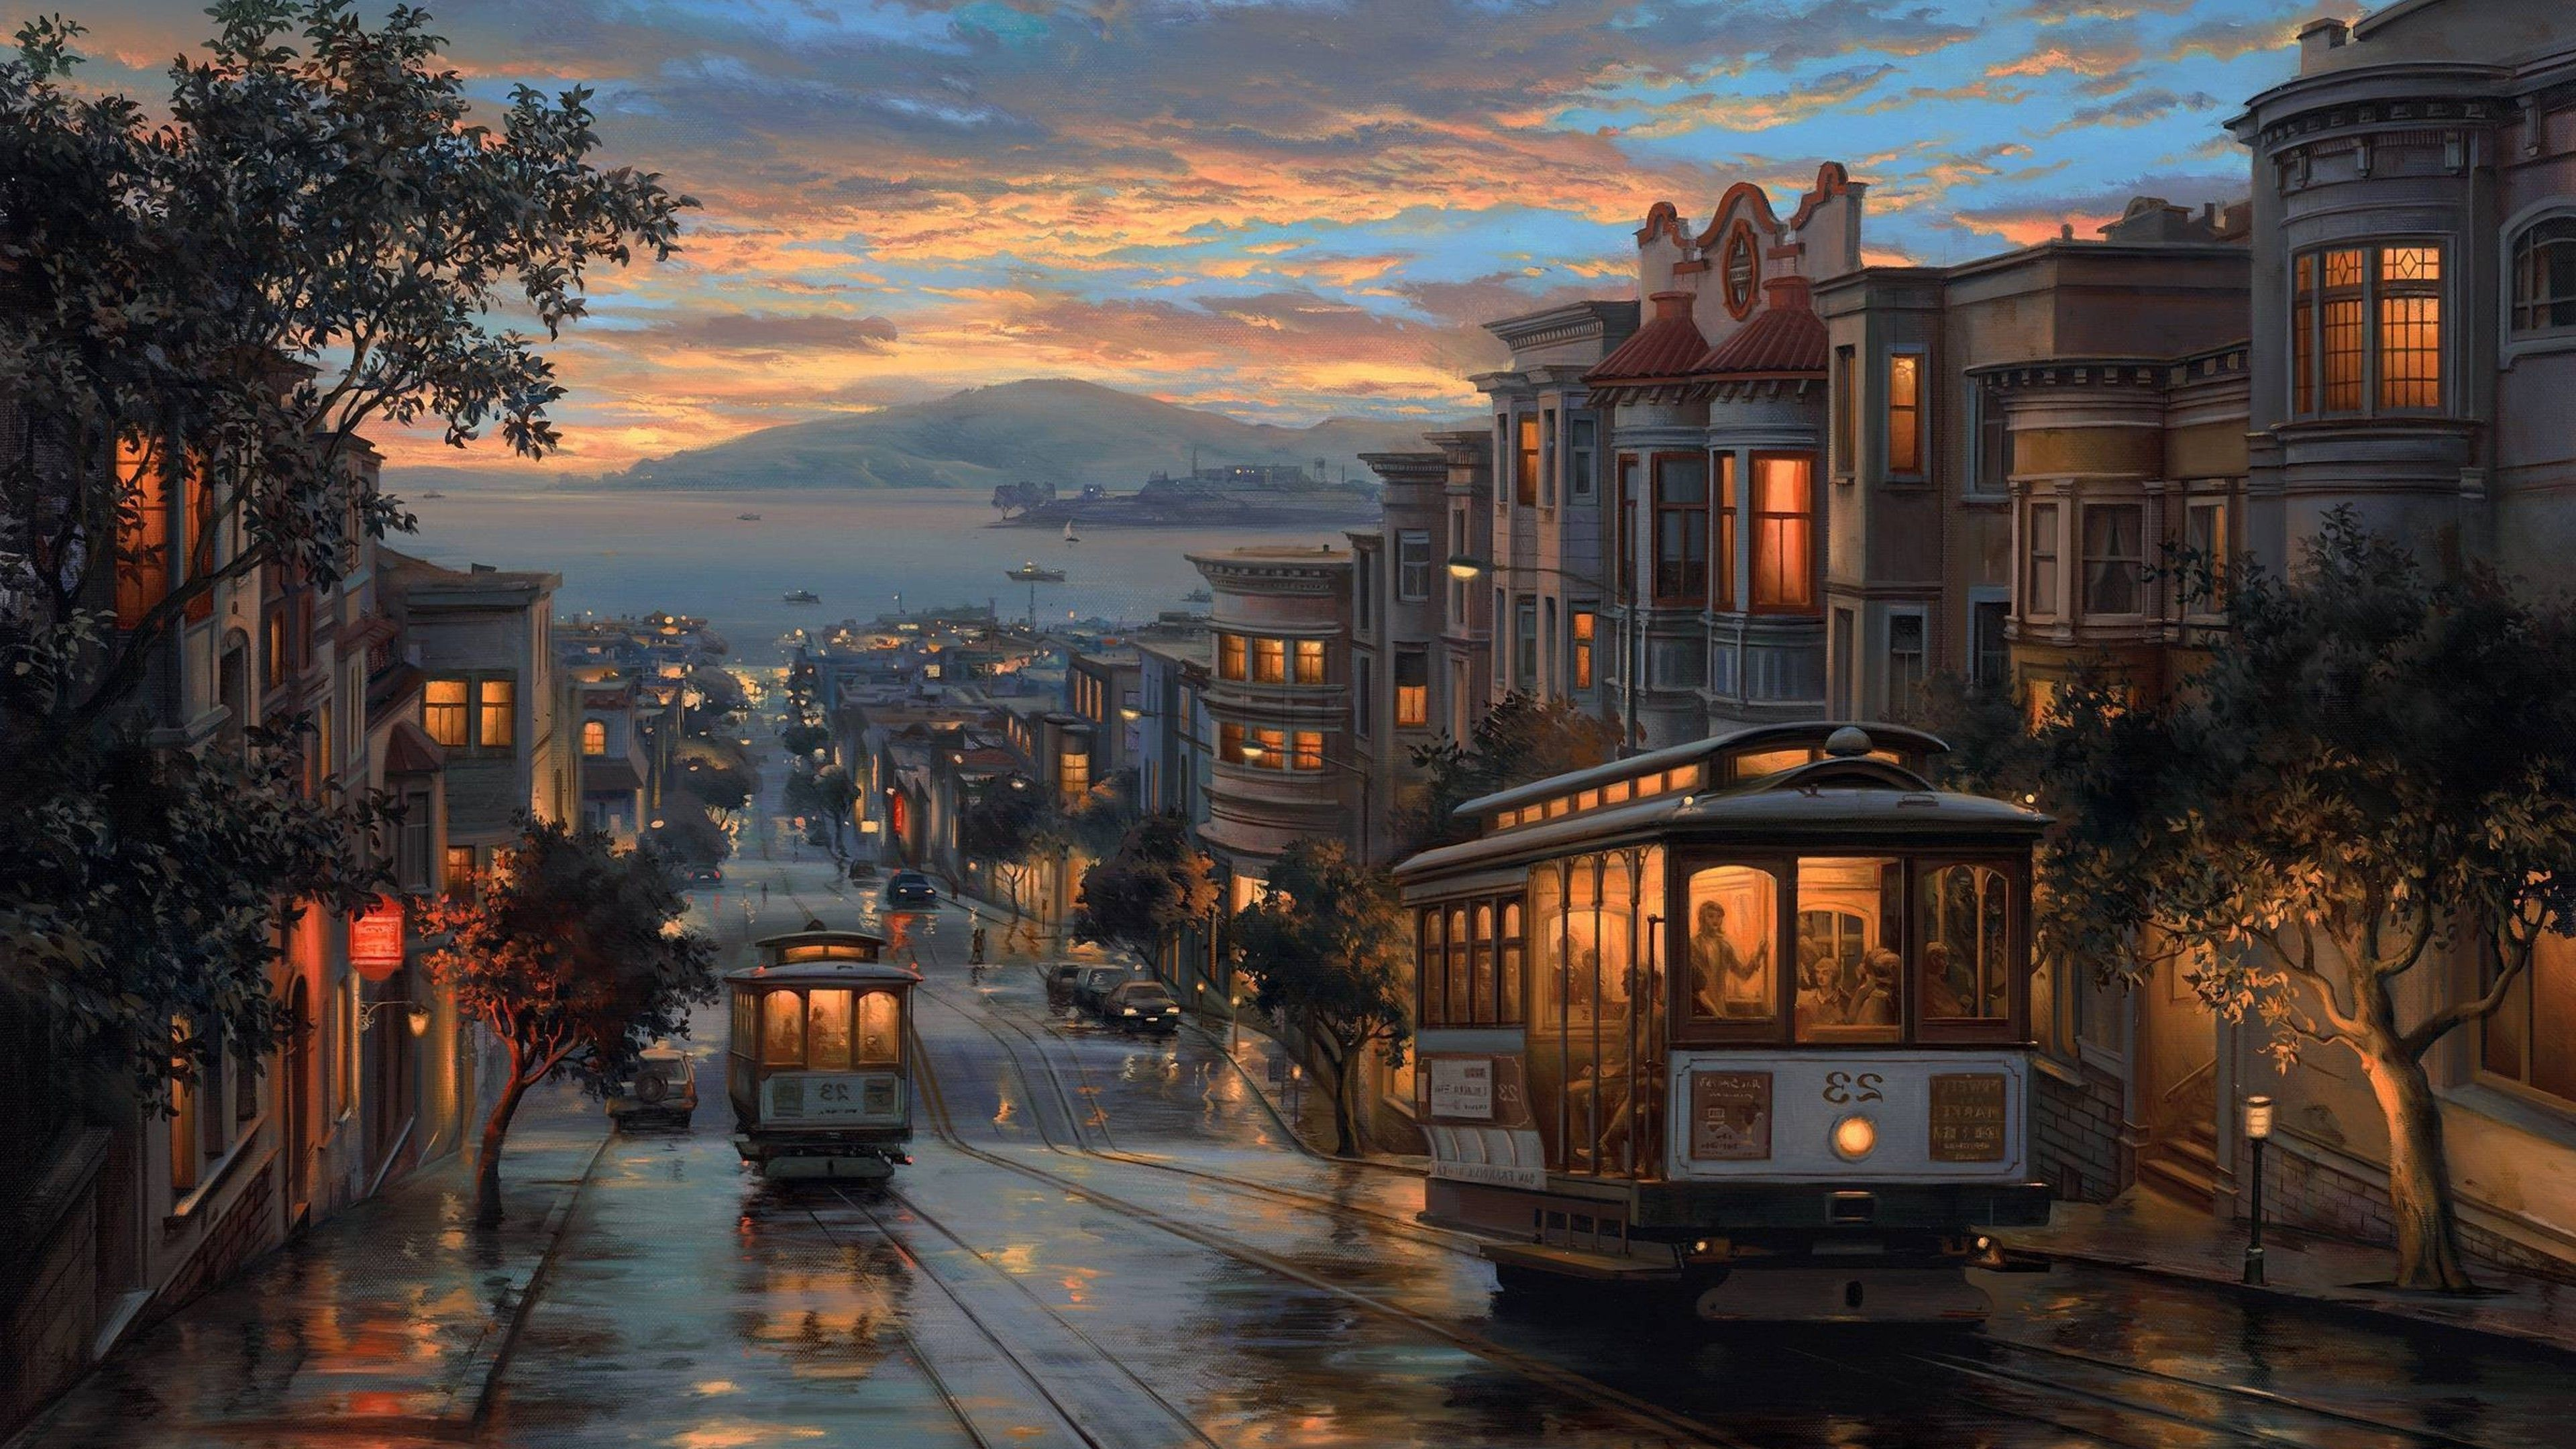 Rainy Night Artistic Painting 4k Train Wallpapers Painting Wallpapers Artist Wallpapers In 2020 San Francisco Wallpaper Rain Wallpapers Pretty Backgrounds